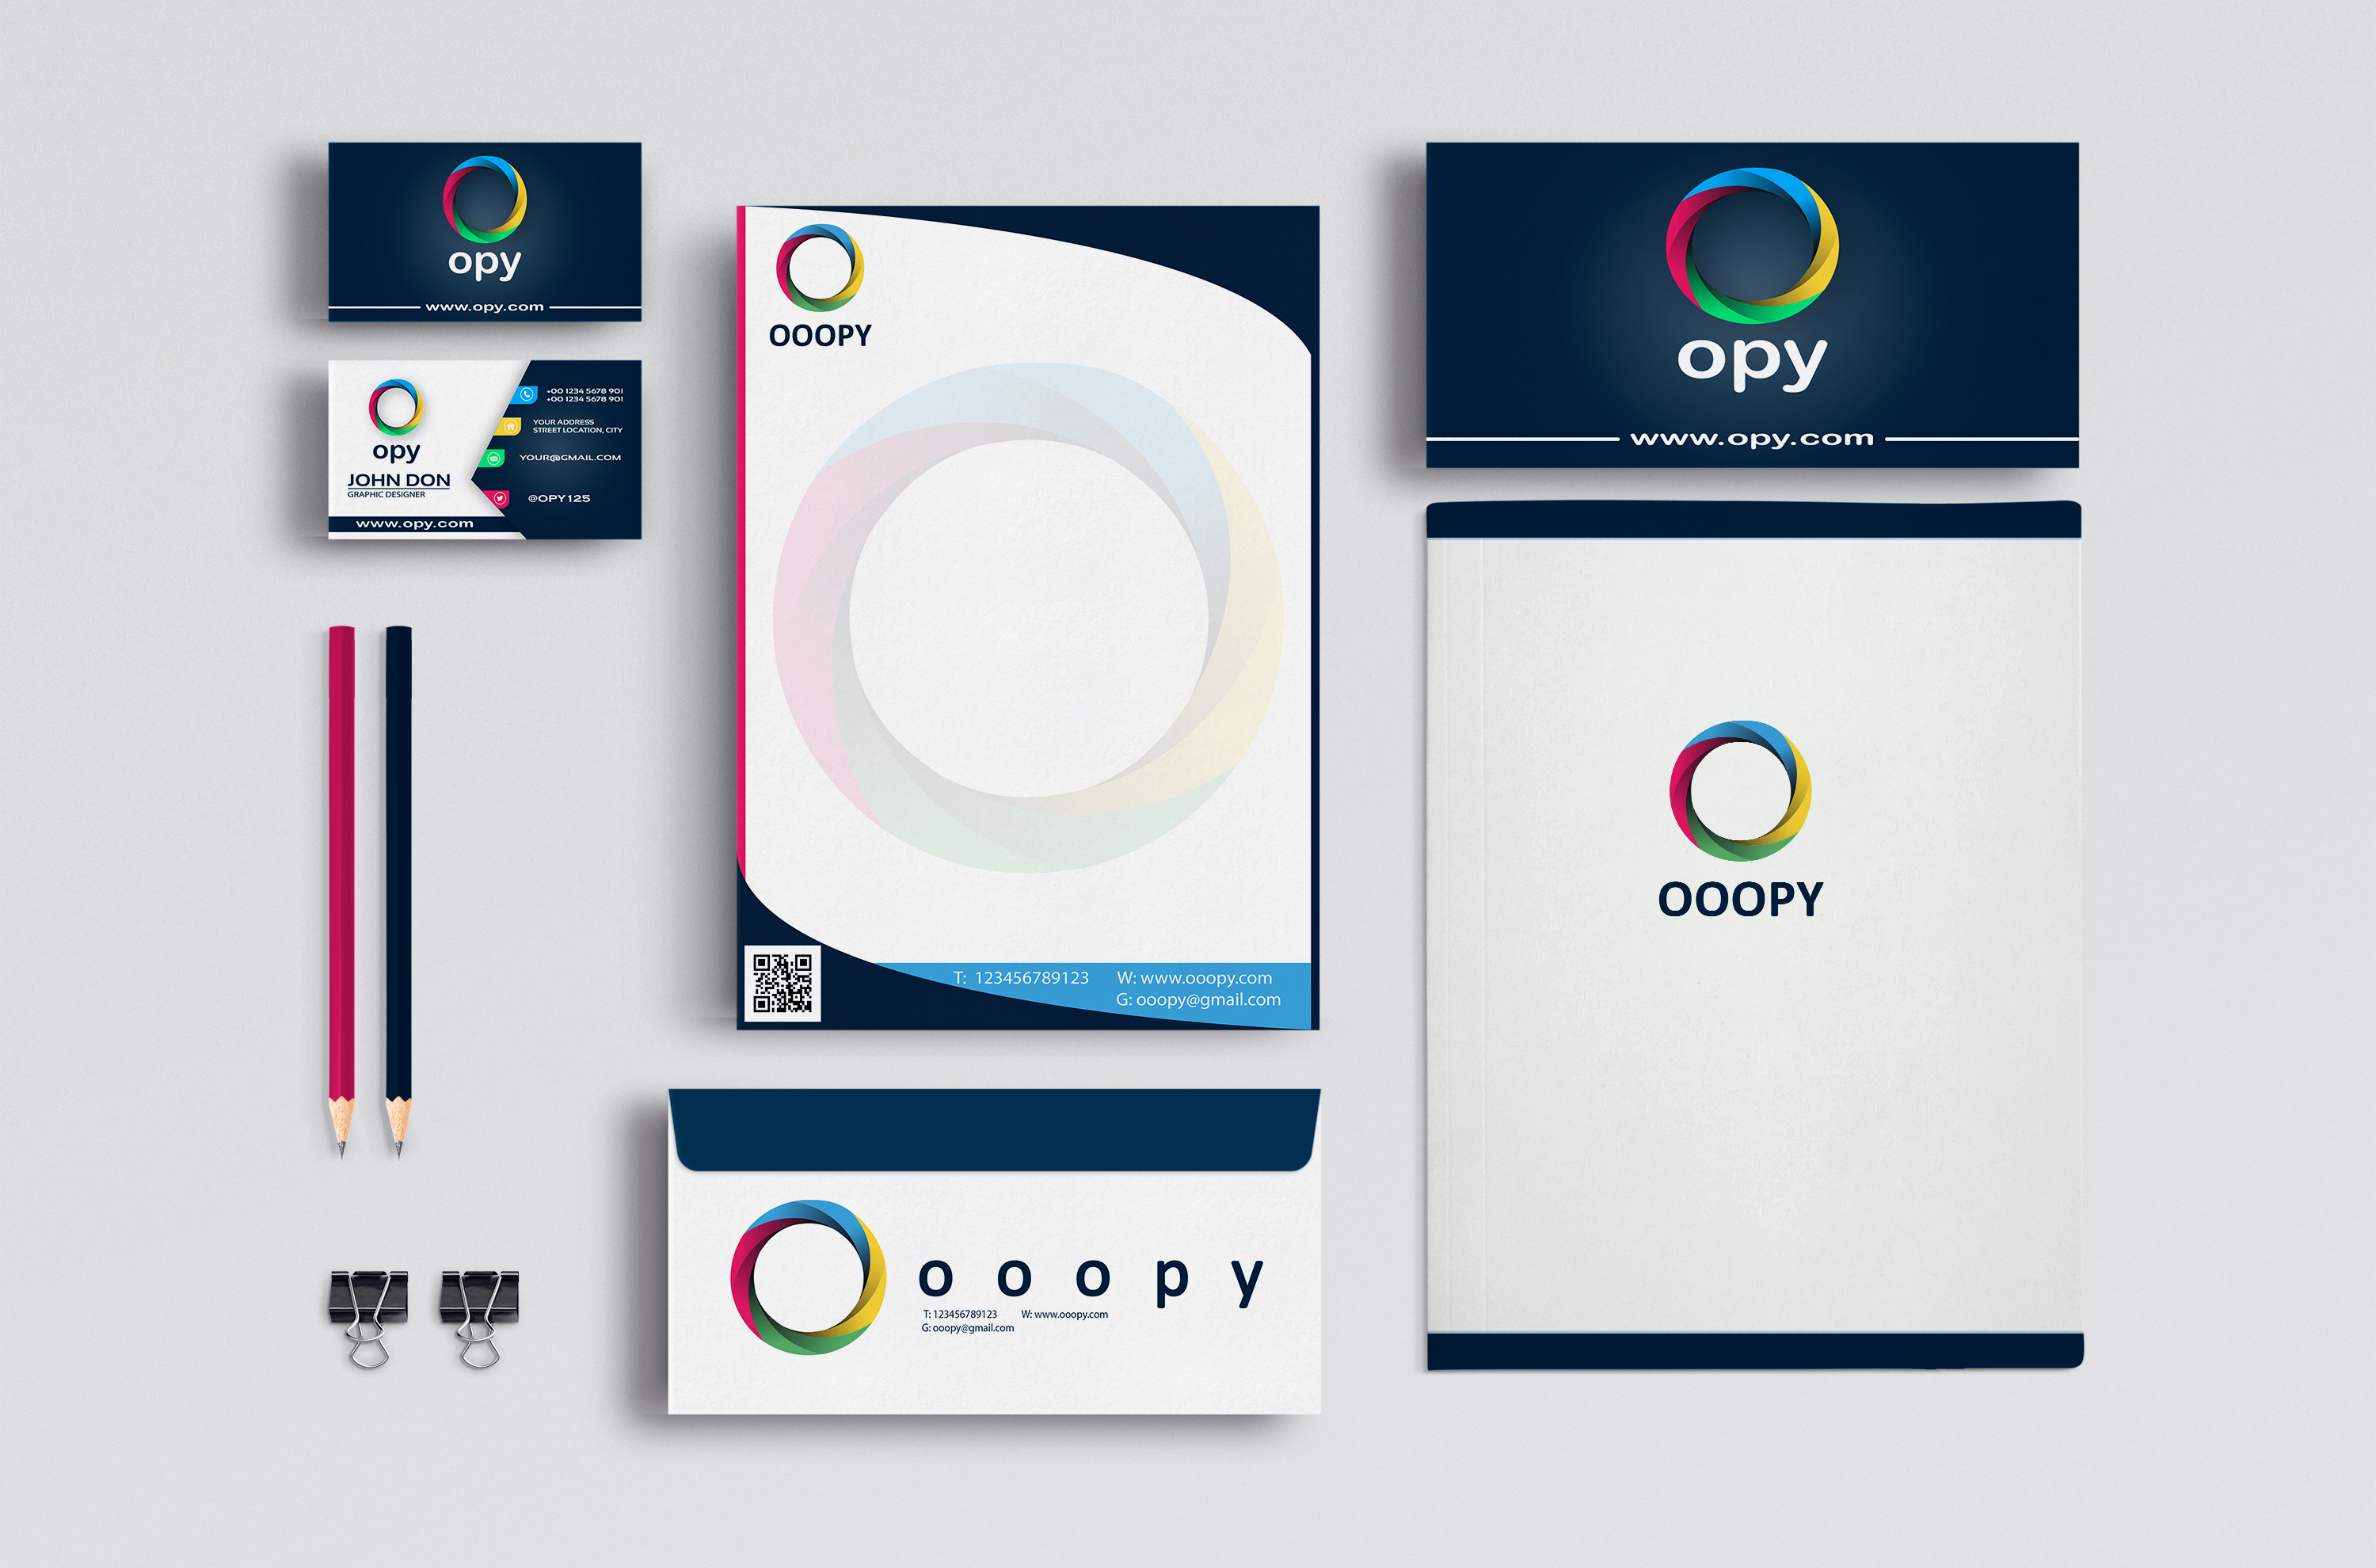 Design logo+business card+letterhead+source editable files and print ready!